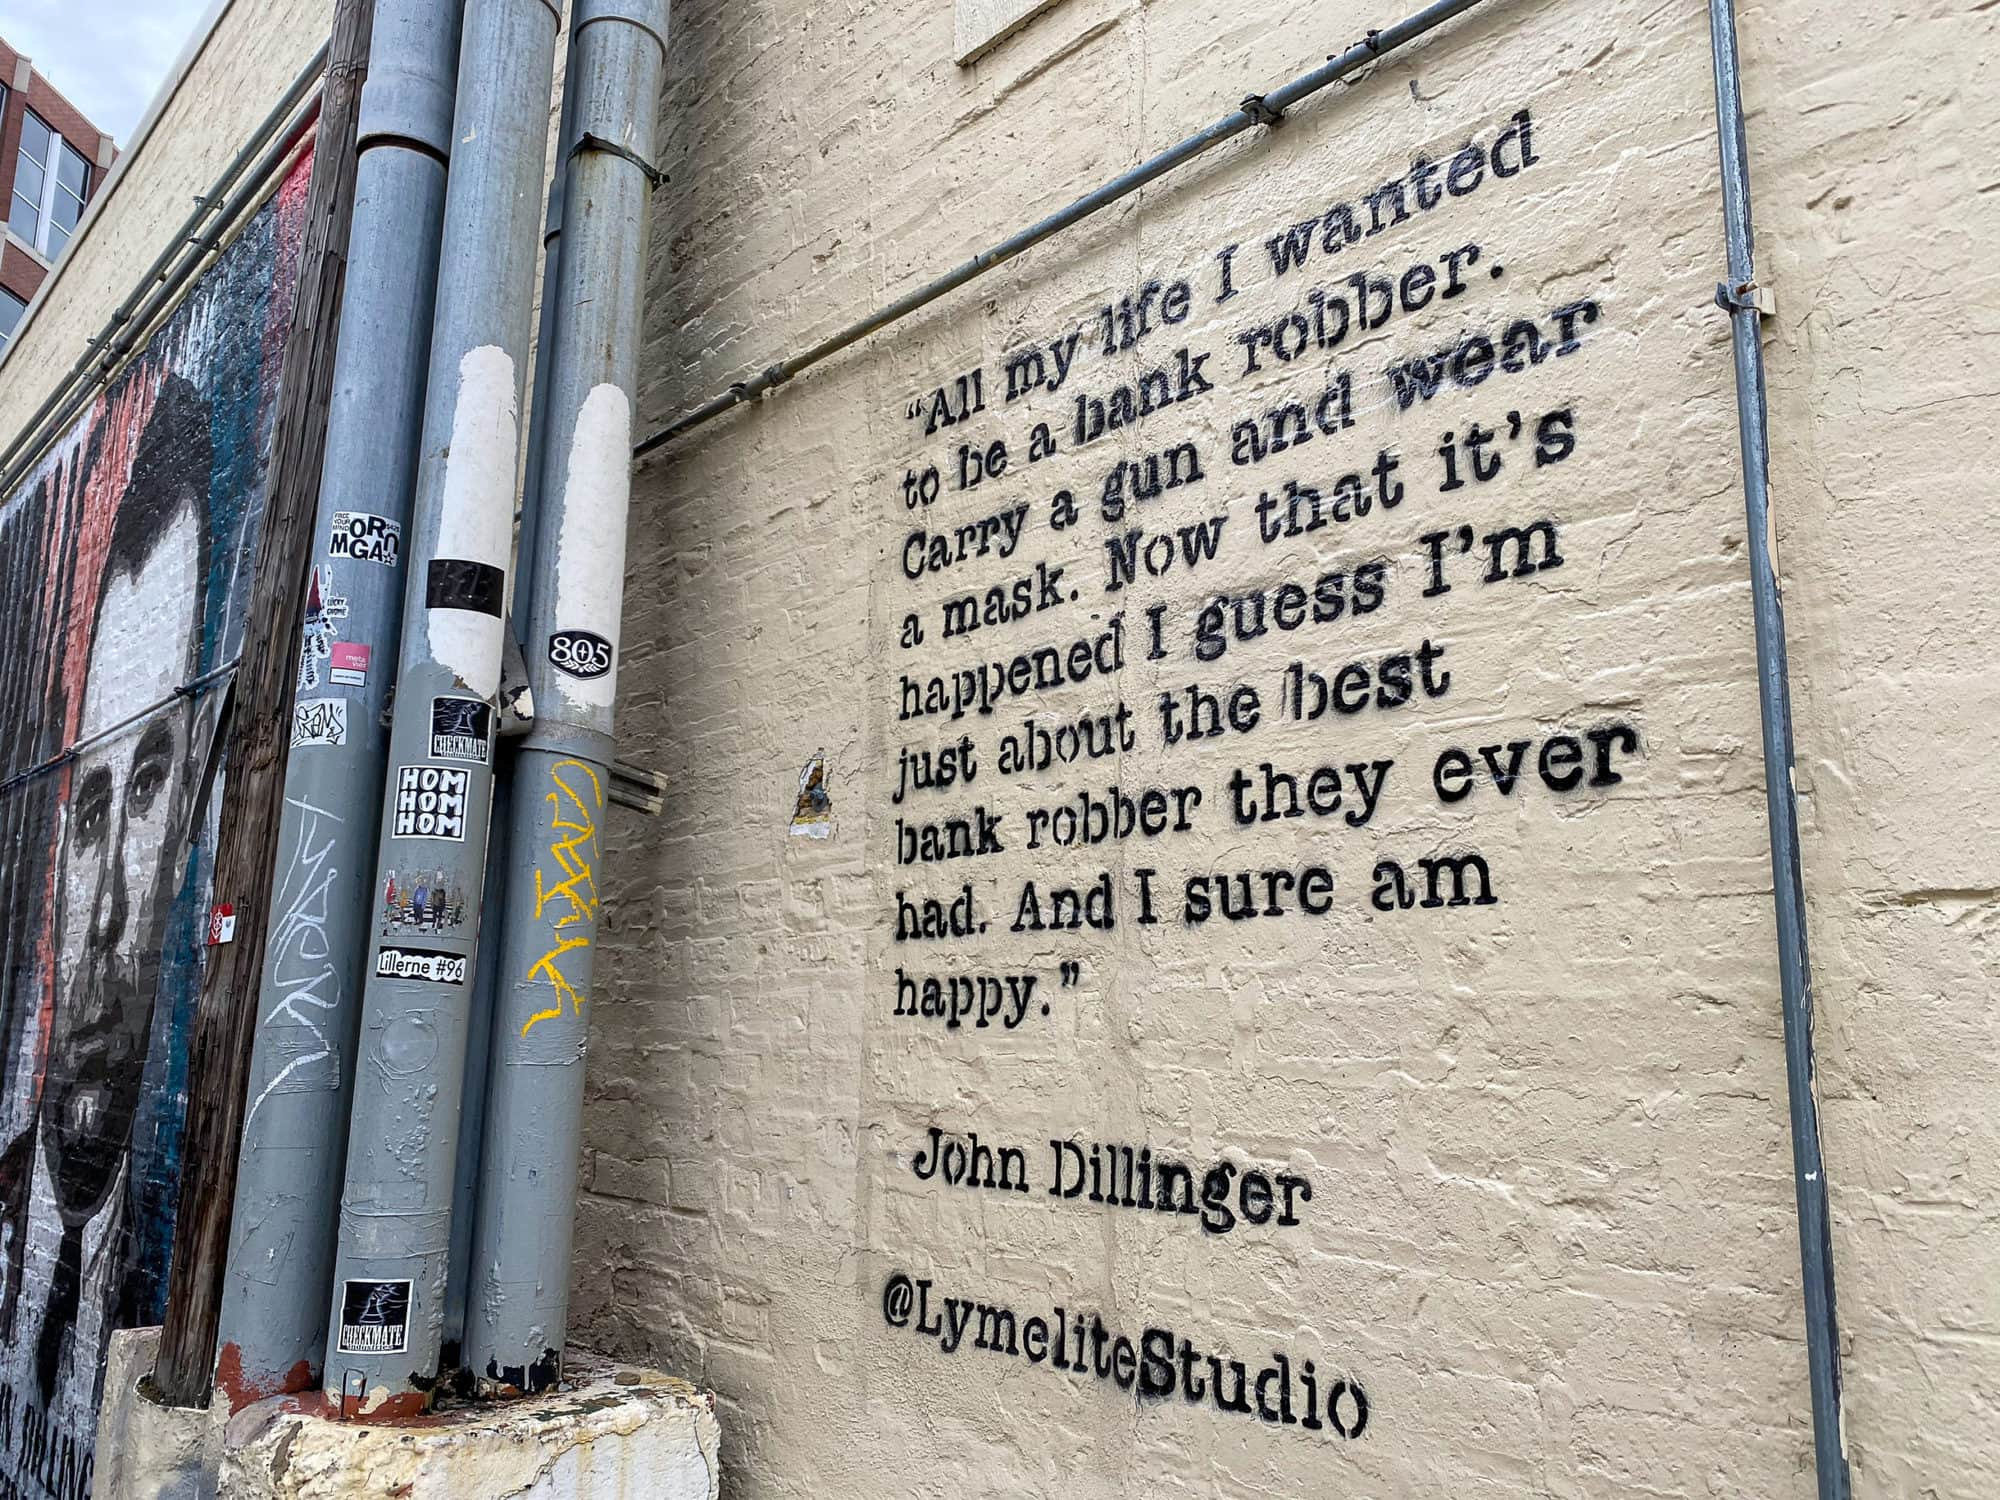 """John Dillinger Mural in Chicago. John Dillinger quote: """"All my life I wanted to be a bank robber. Carry a gun and wear a mask. Now that it's happened I guess I'm just about the best bank robber they ever had. And I sure am happy."""""""